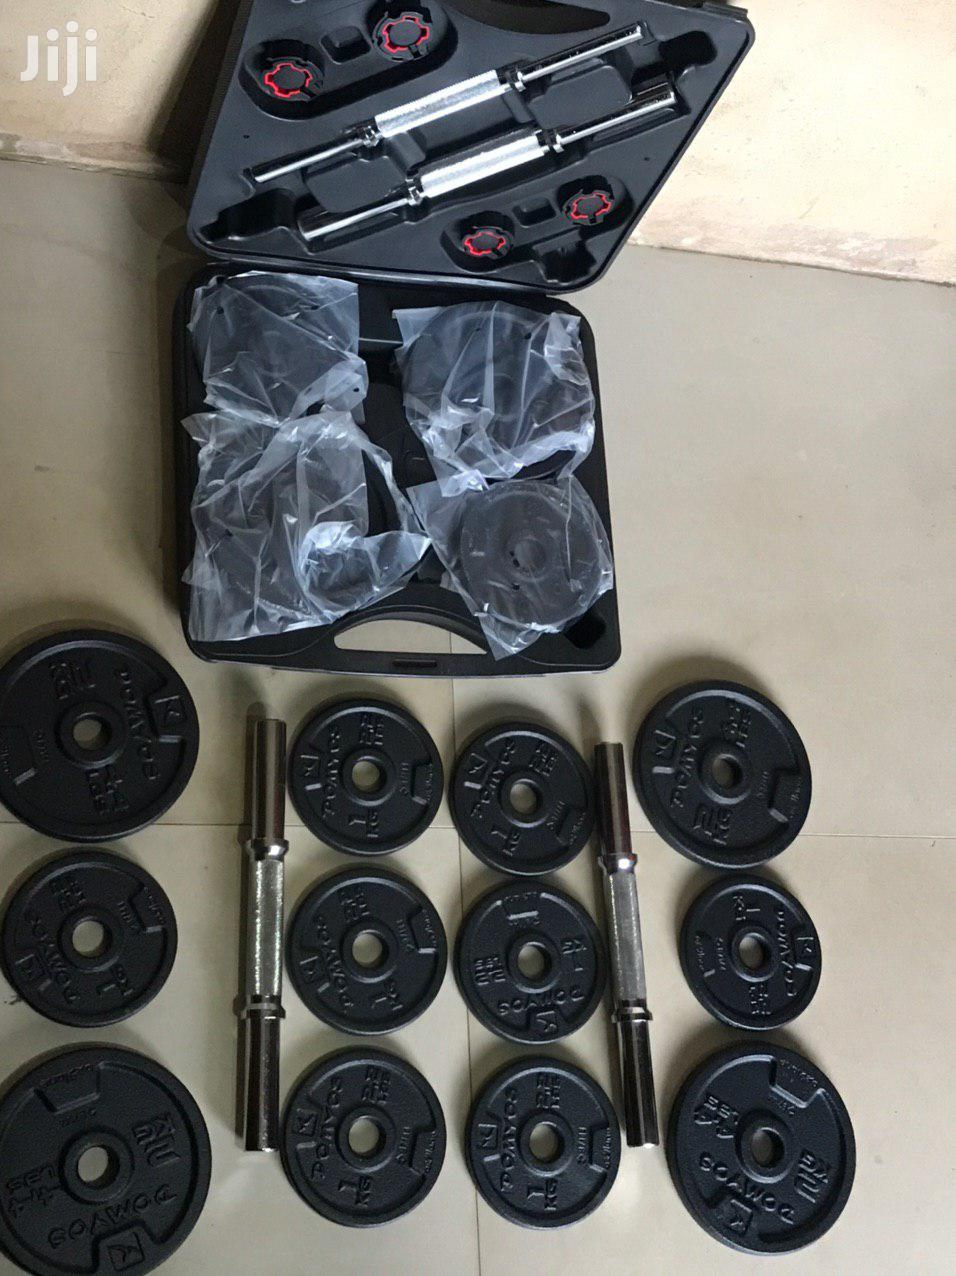 Dumbell 20kg Set Adjustable | Sports Equipment for sale in Accra Metropolitan, Greater Accra, Ghana